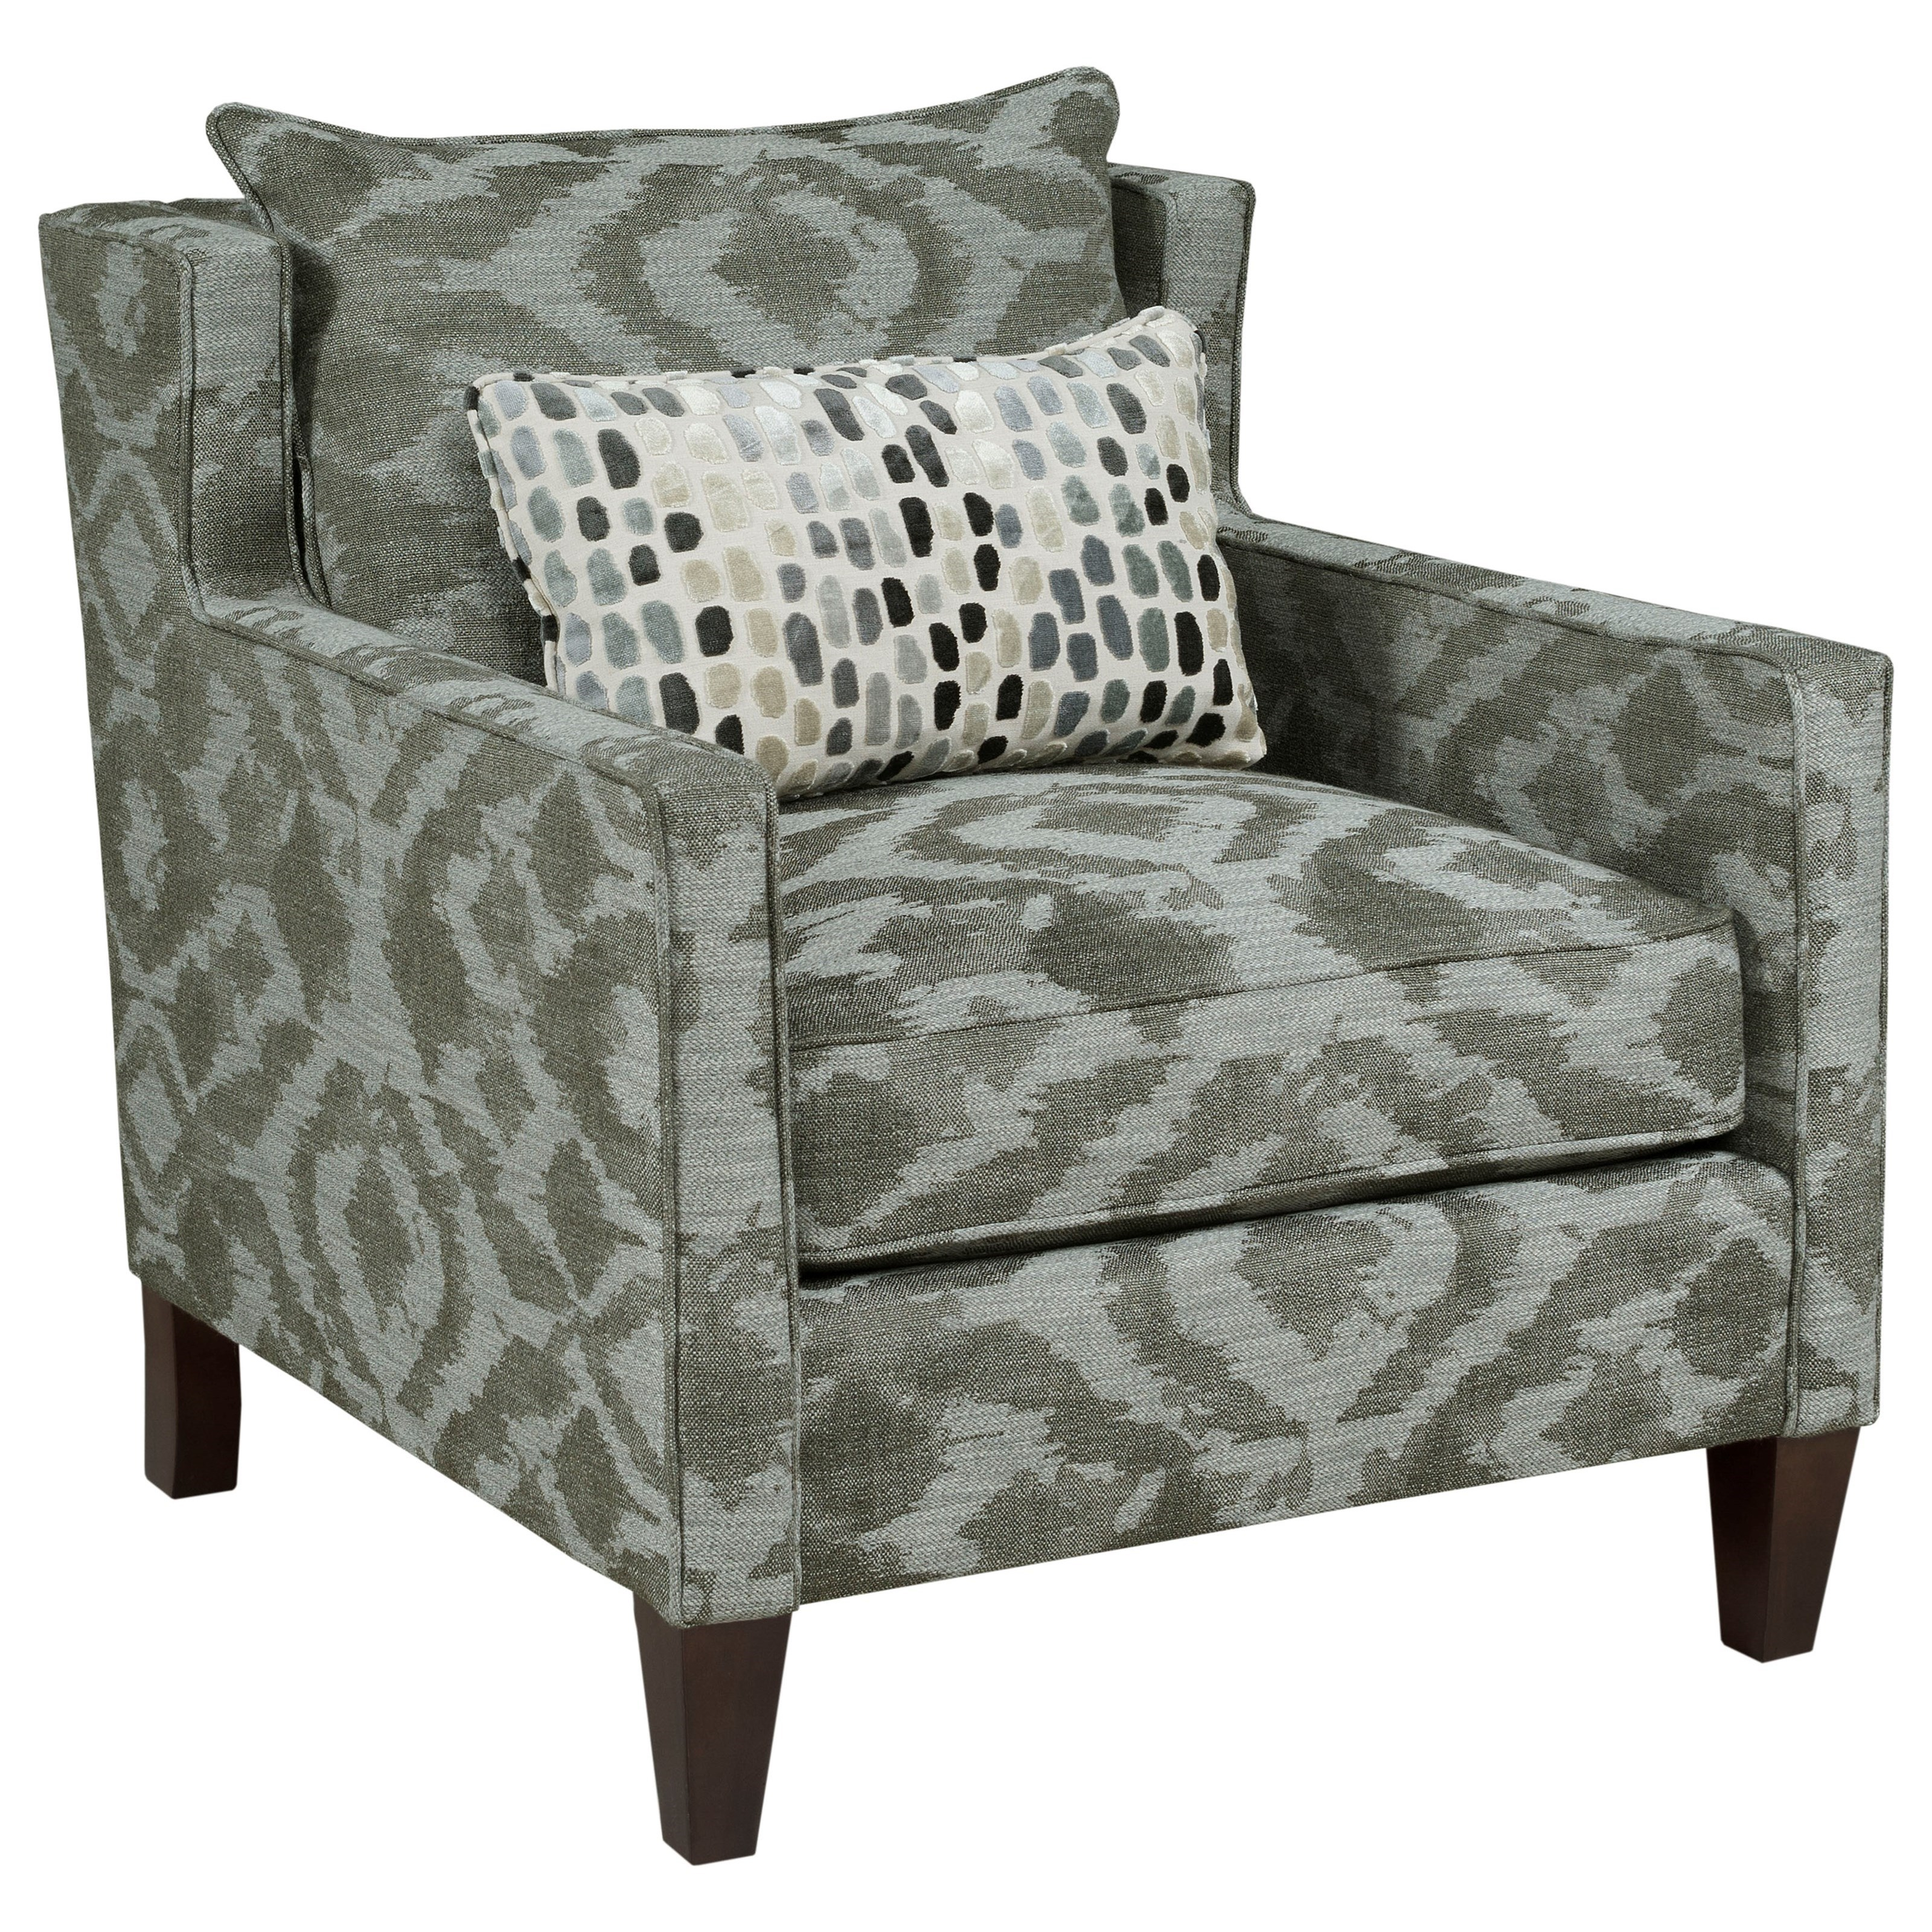 Alta Upholstered Chair by Kincaid Furniture at Belfort Furniture